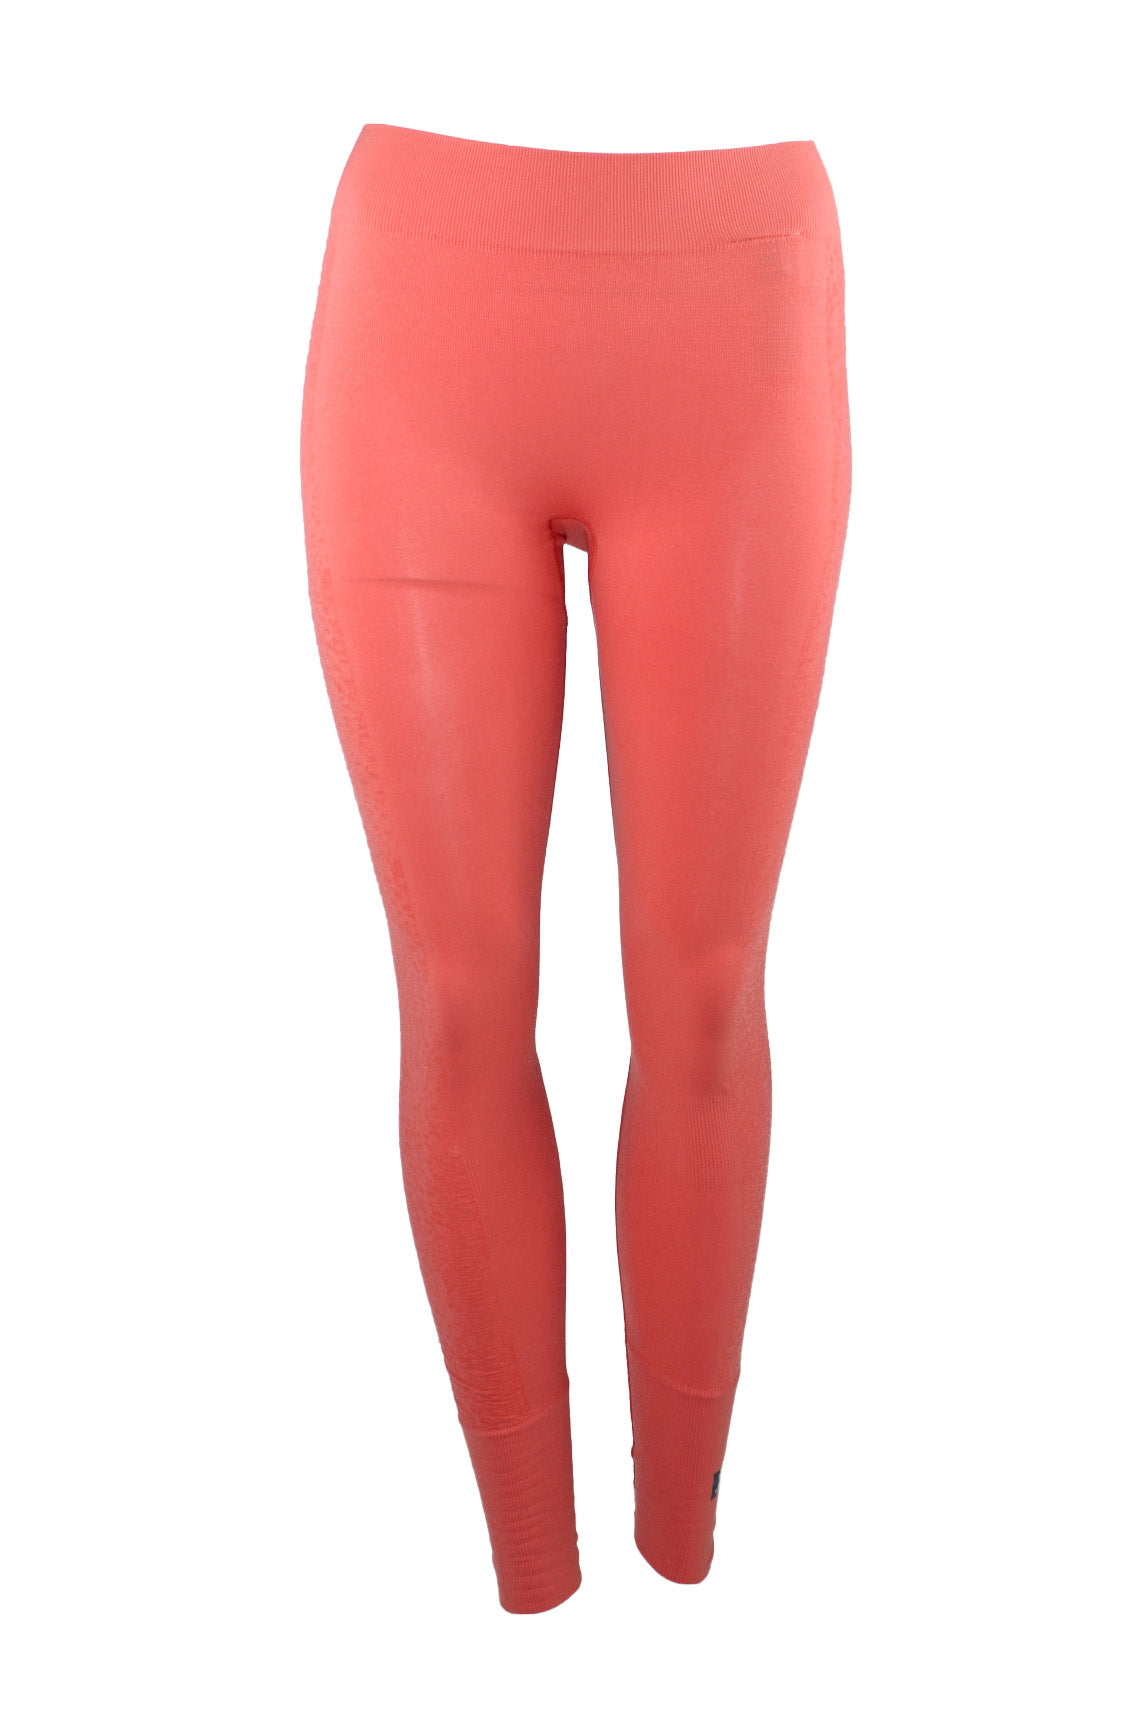 adidas x stella mccartney salmon seamless tights. features salmon tone exterior with ribbed panels throughout and textured panels at sides.